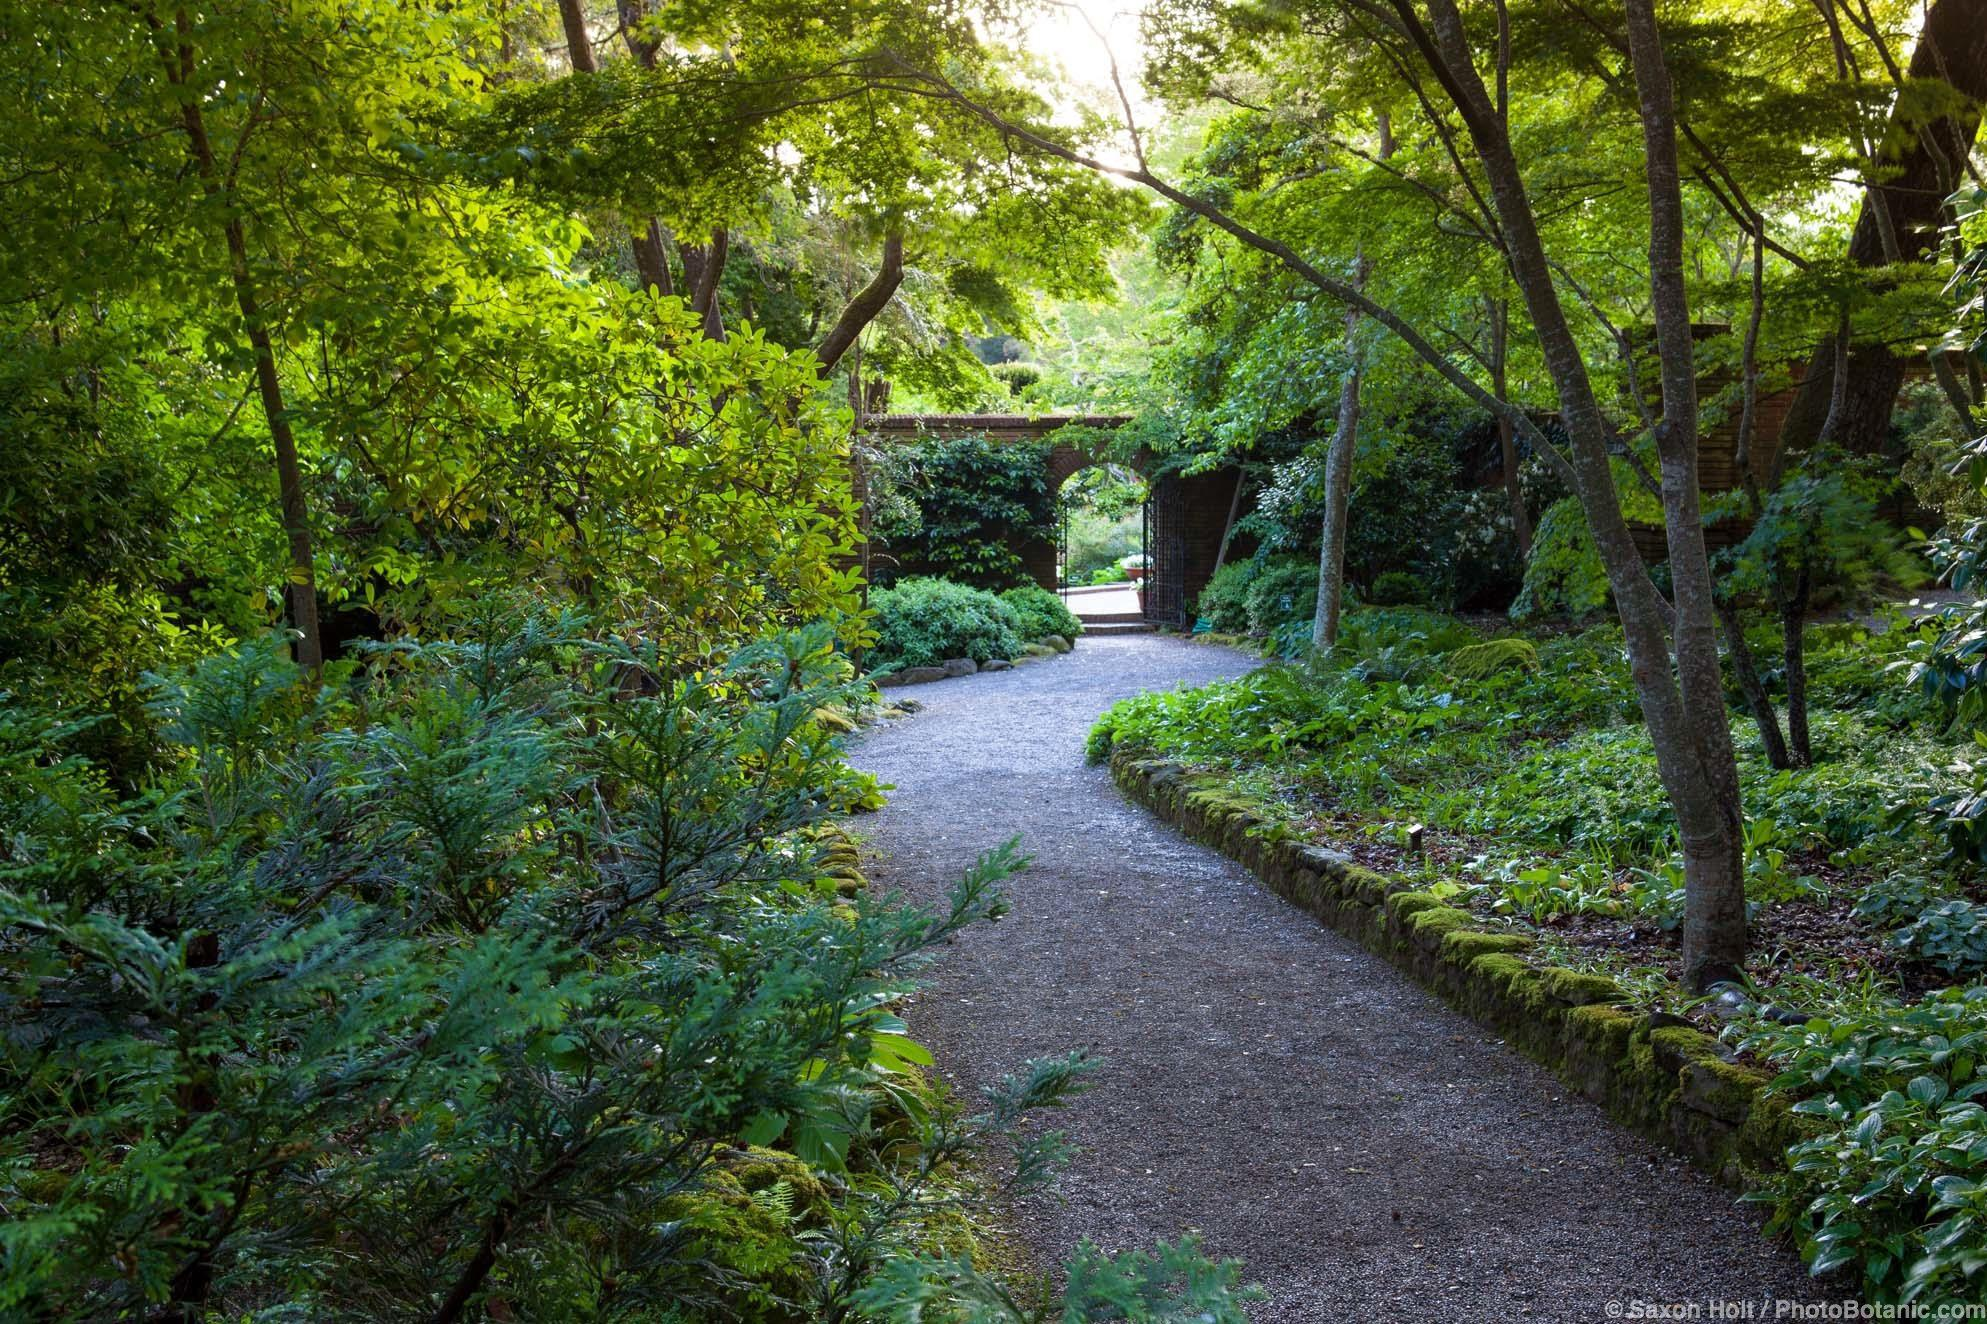 Gravel path in woodland garden to open door into walled garden in morning light at Filoli